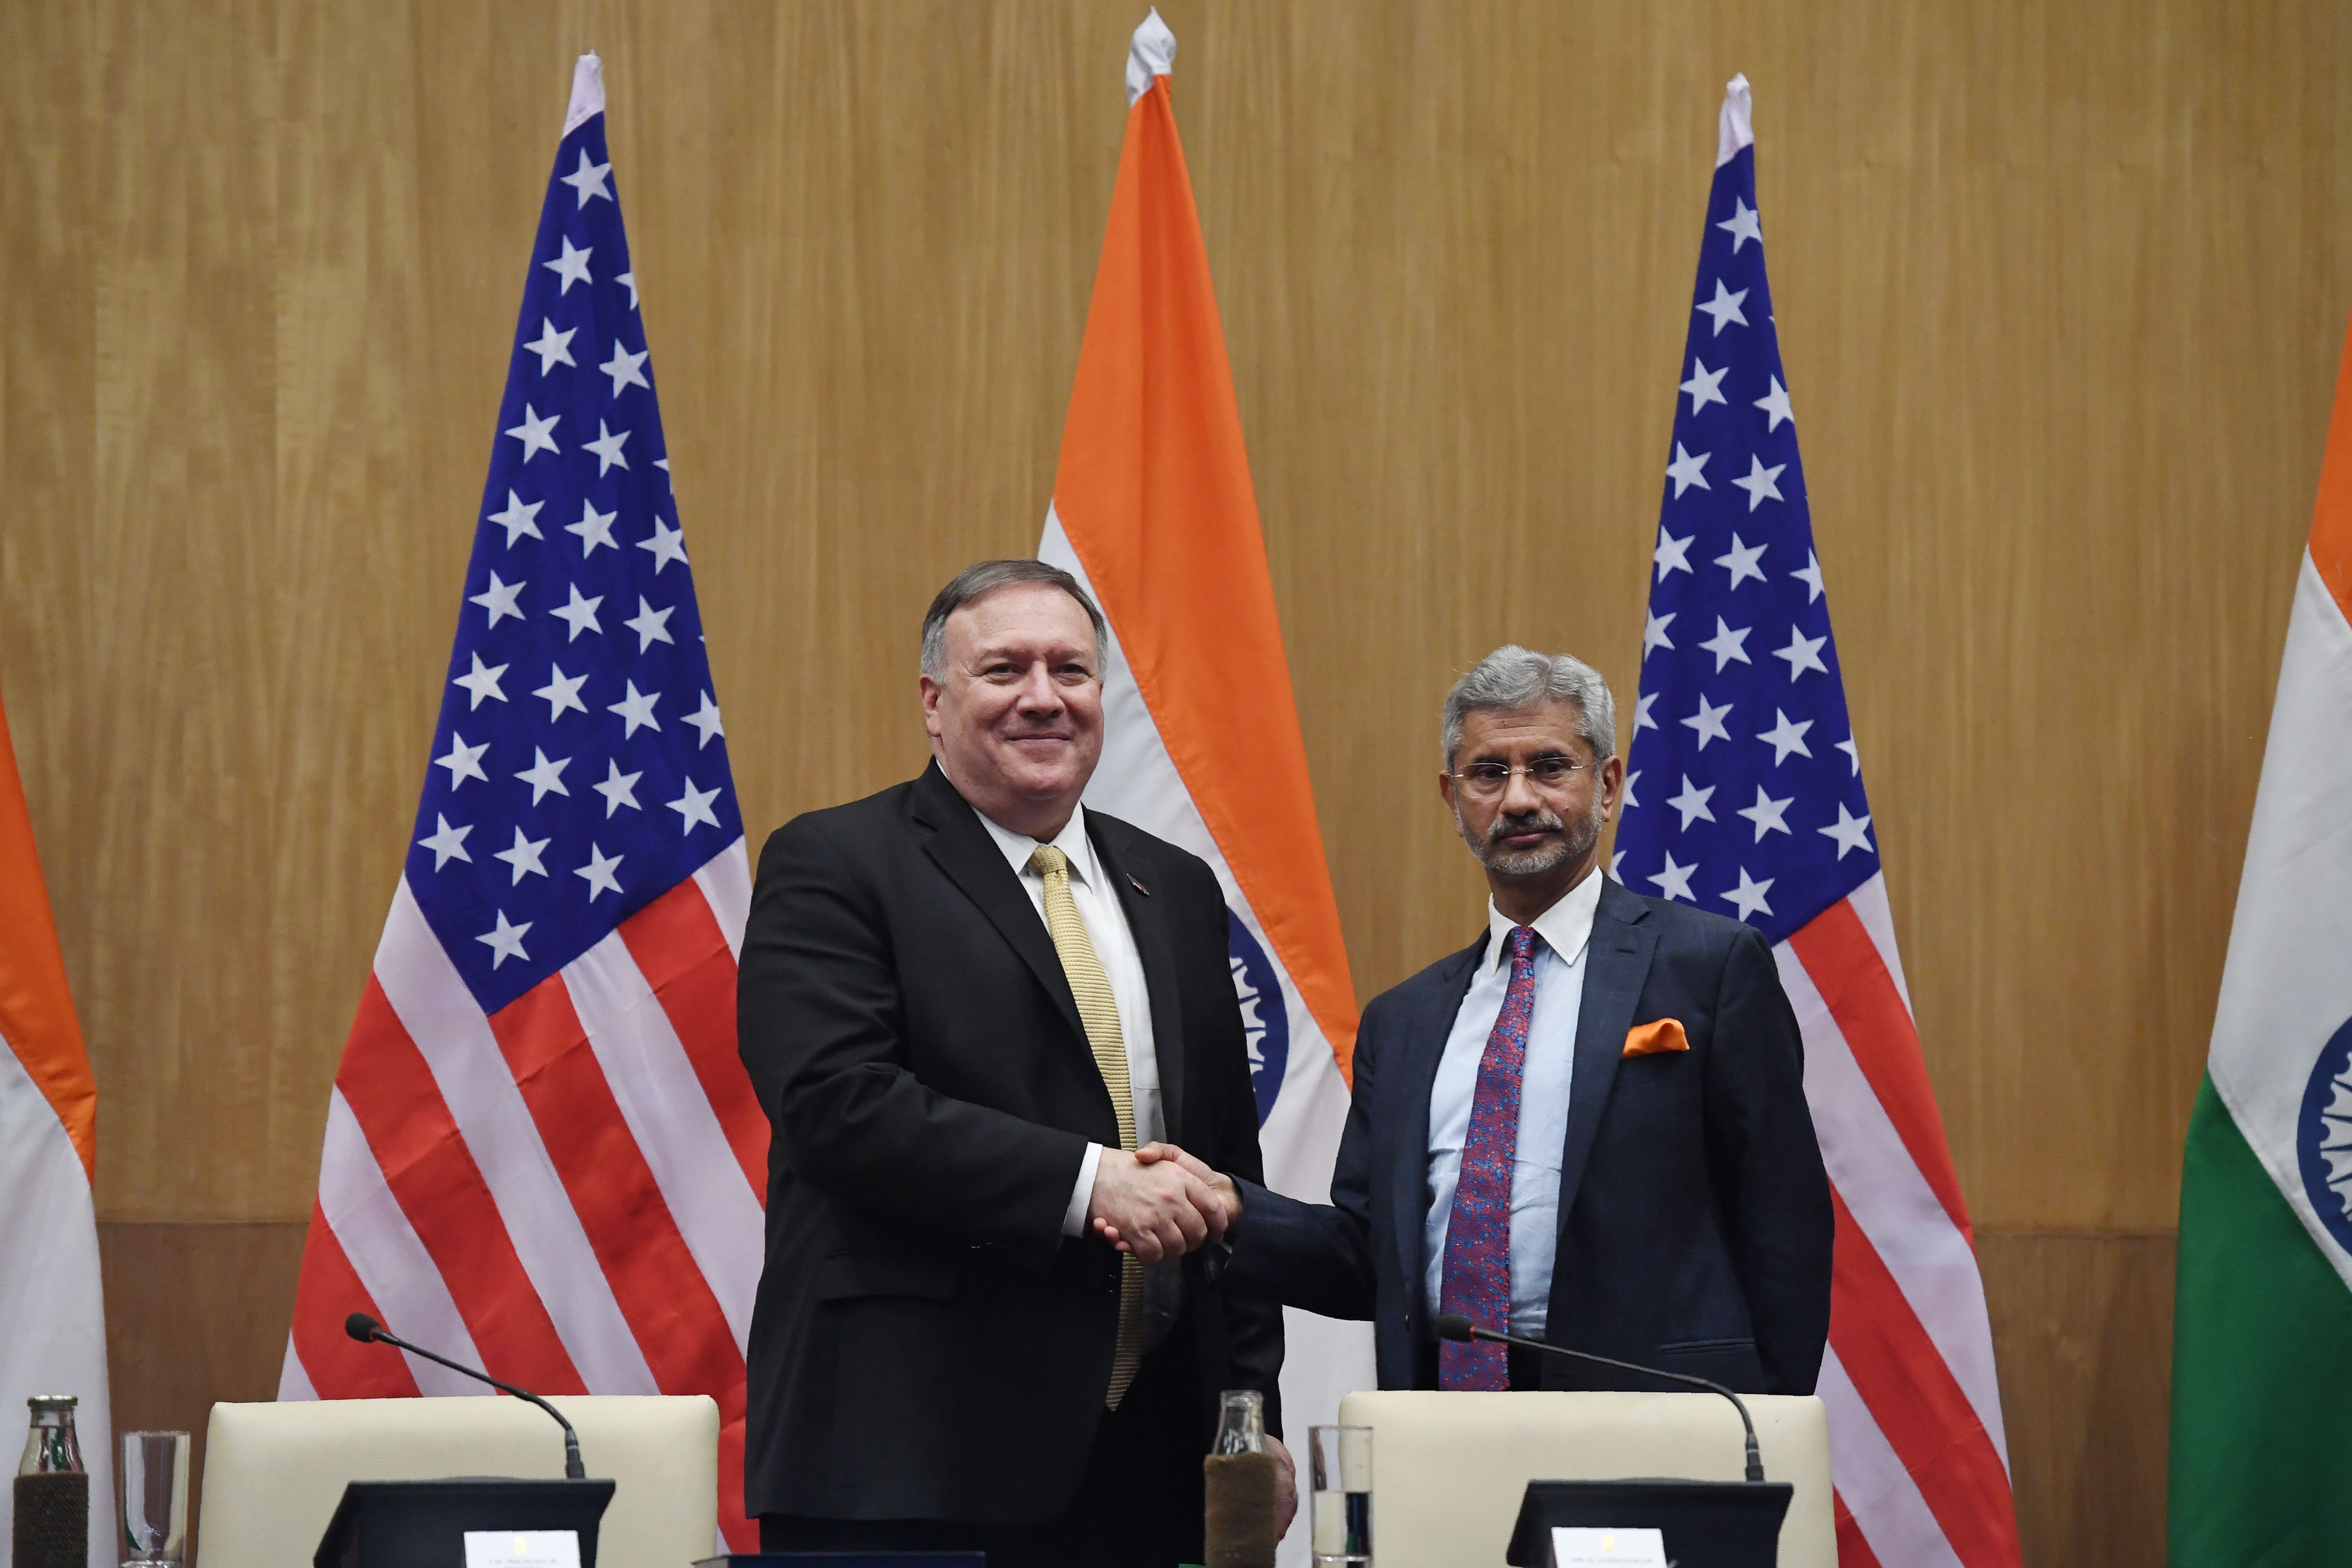 Indian Foreign Minister S. Jayashankar (R) and US Secretary of State Mike Pompeo shakes hands during a joint press statement in New Delhi. (Photo by PRAKASH SINGH / AFP)        (Photo credit should read PRAKASH SINGH/AFP/Getty Images)